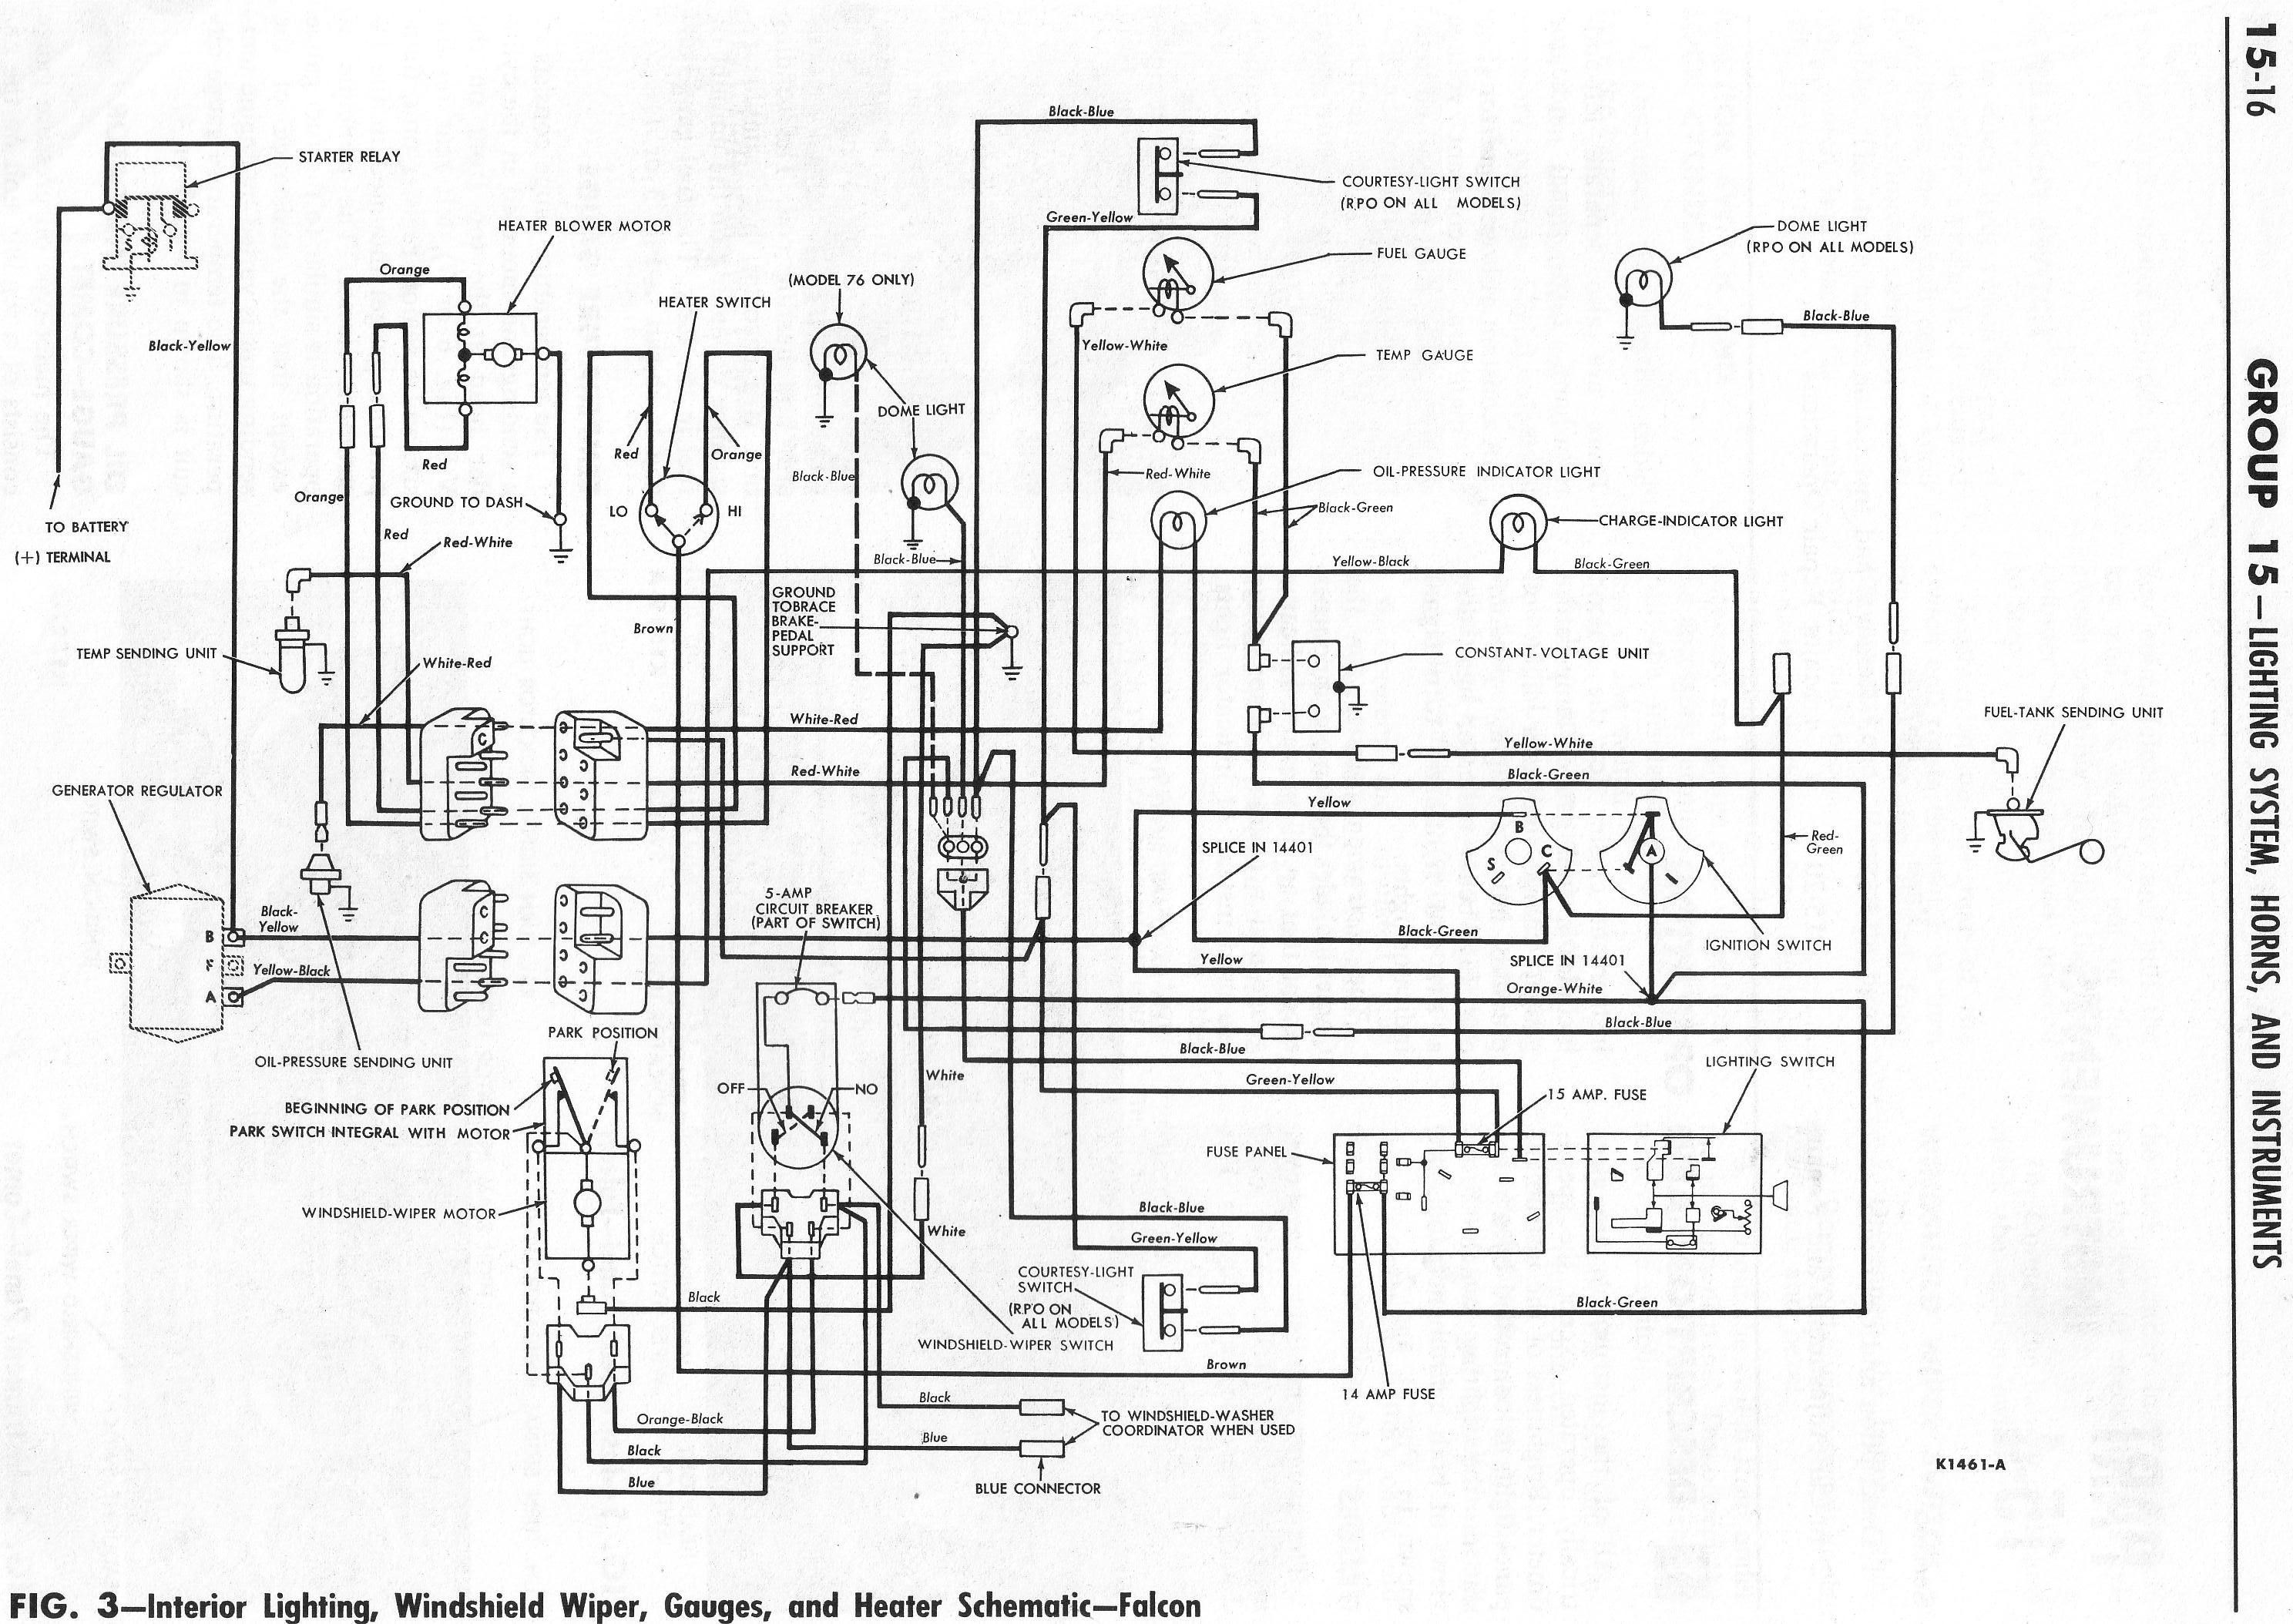 New Wiring Diagram ford Falcon Au Radio